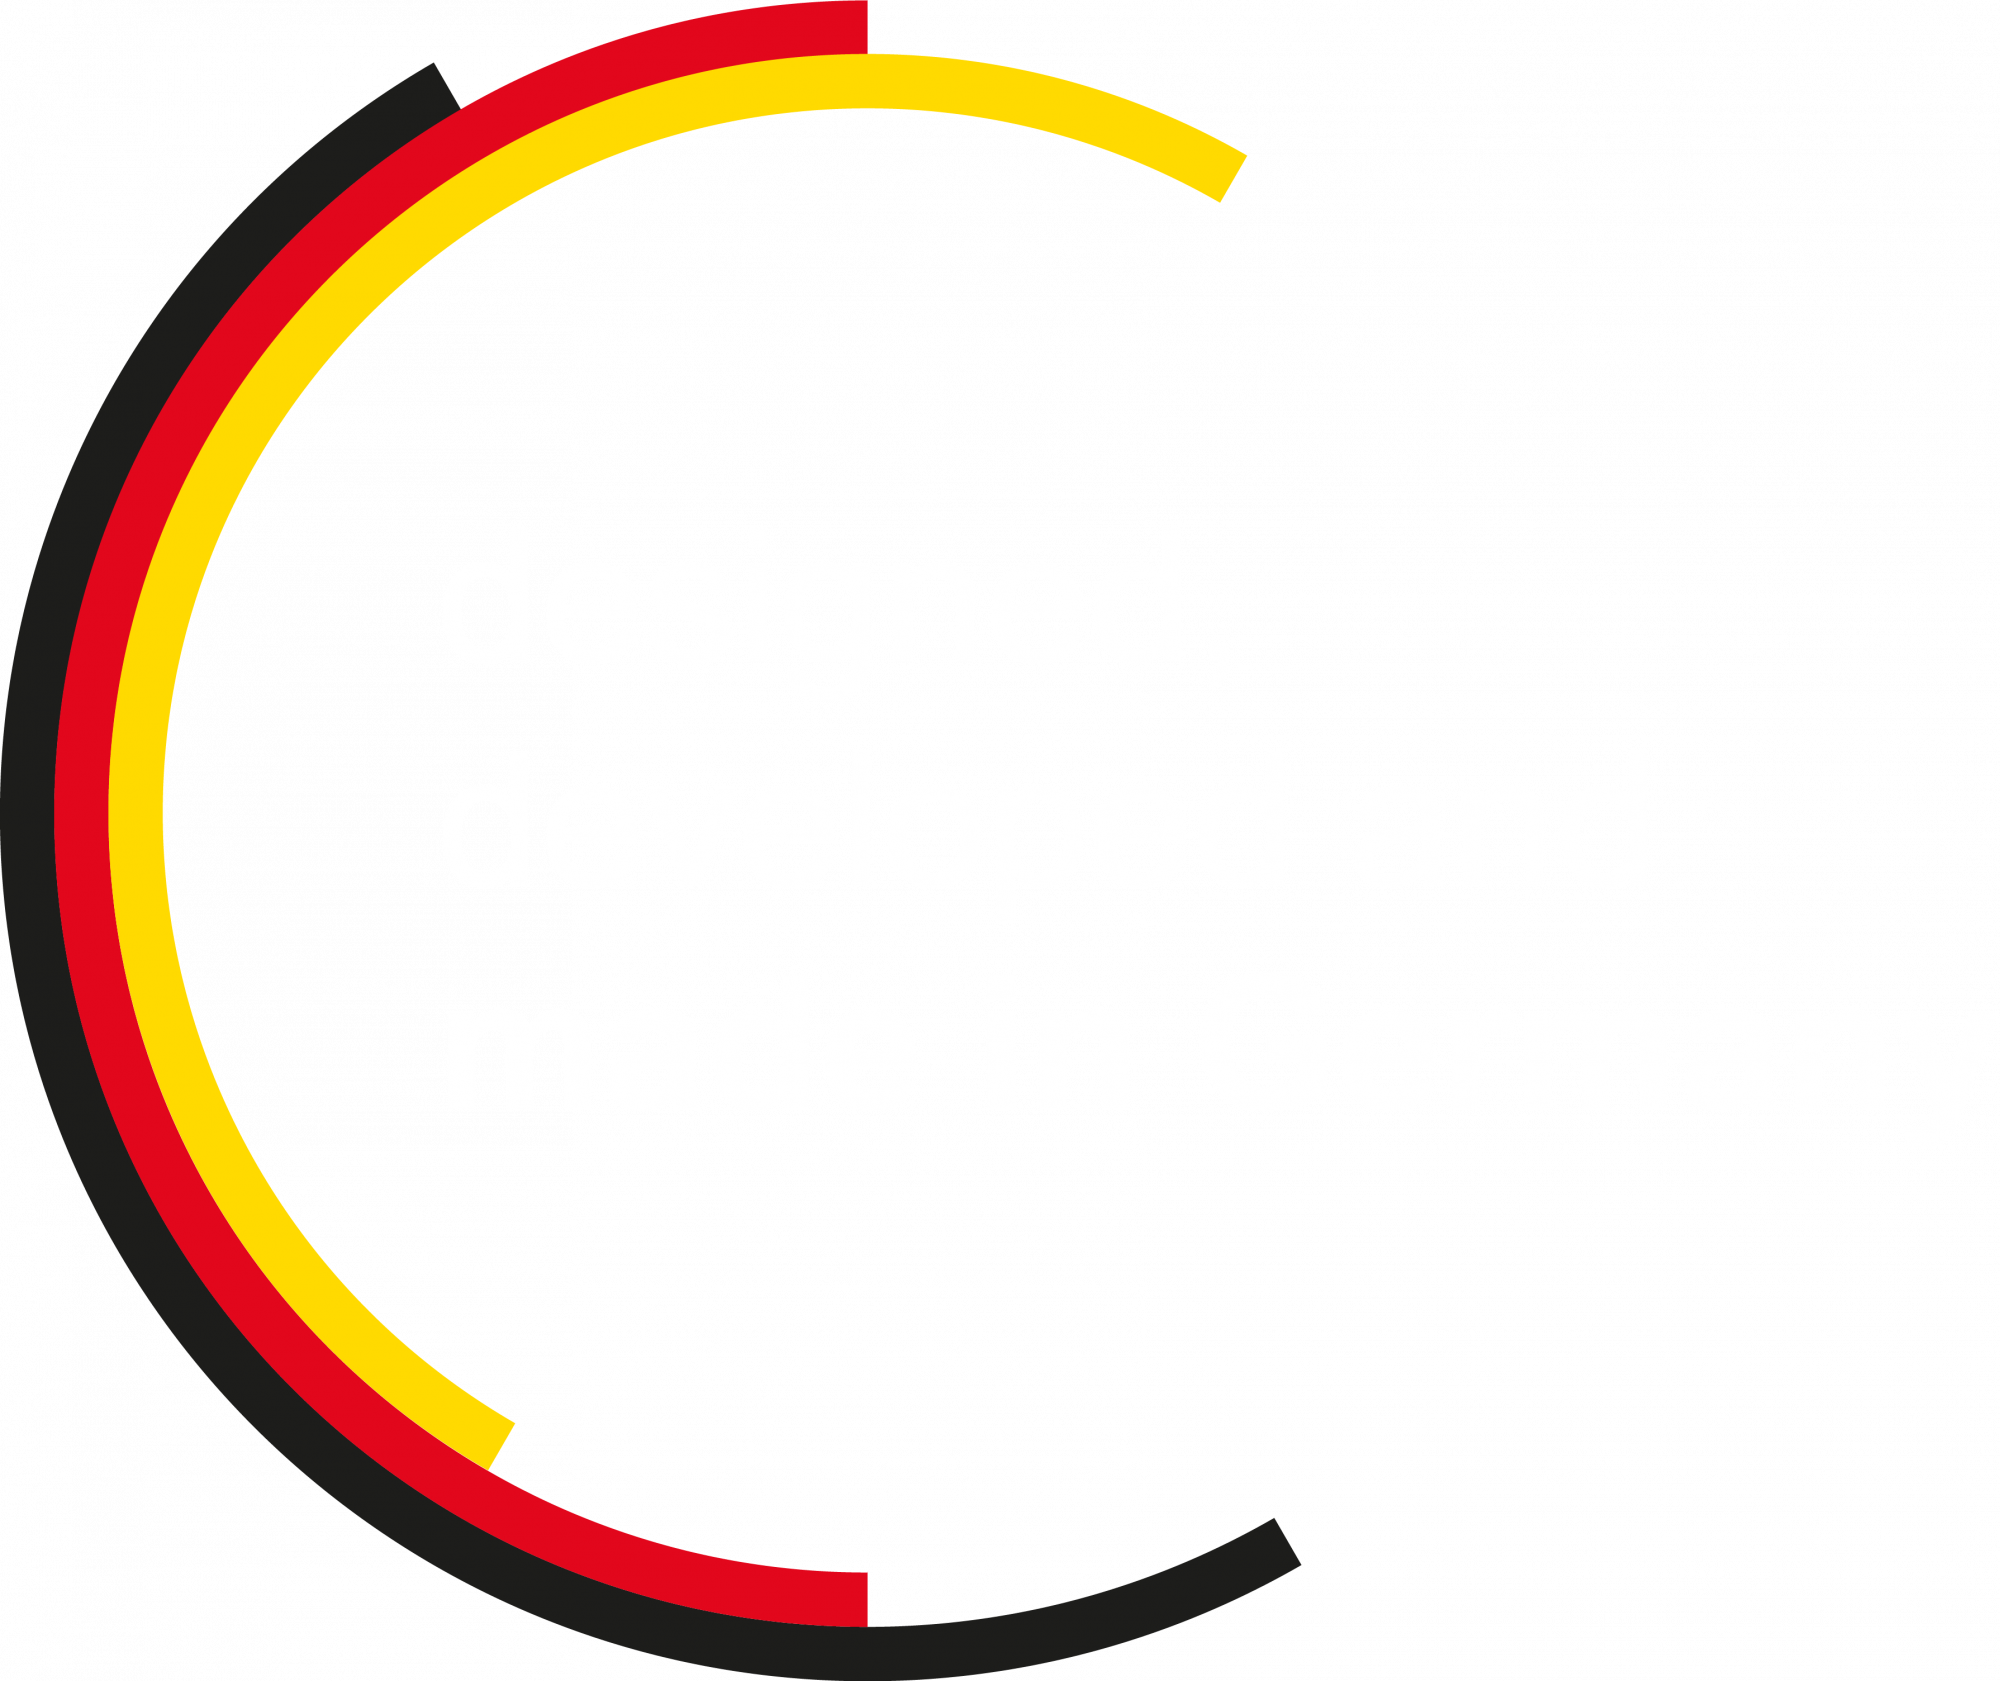 Unser Motto lautet: designed, developed and made in Germany